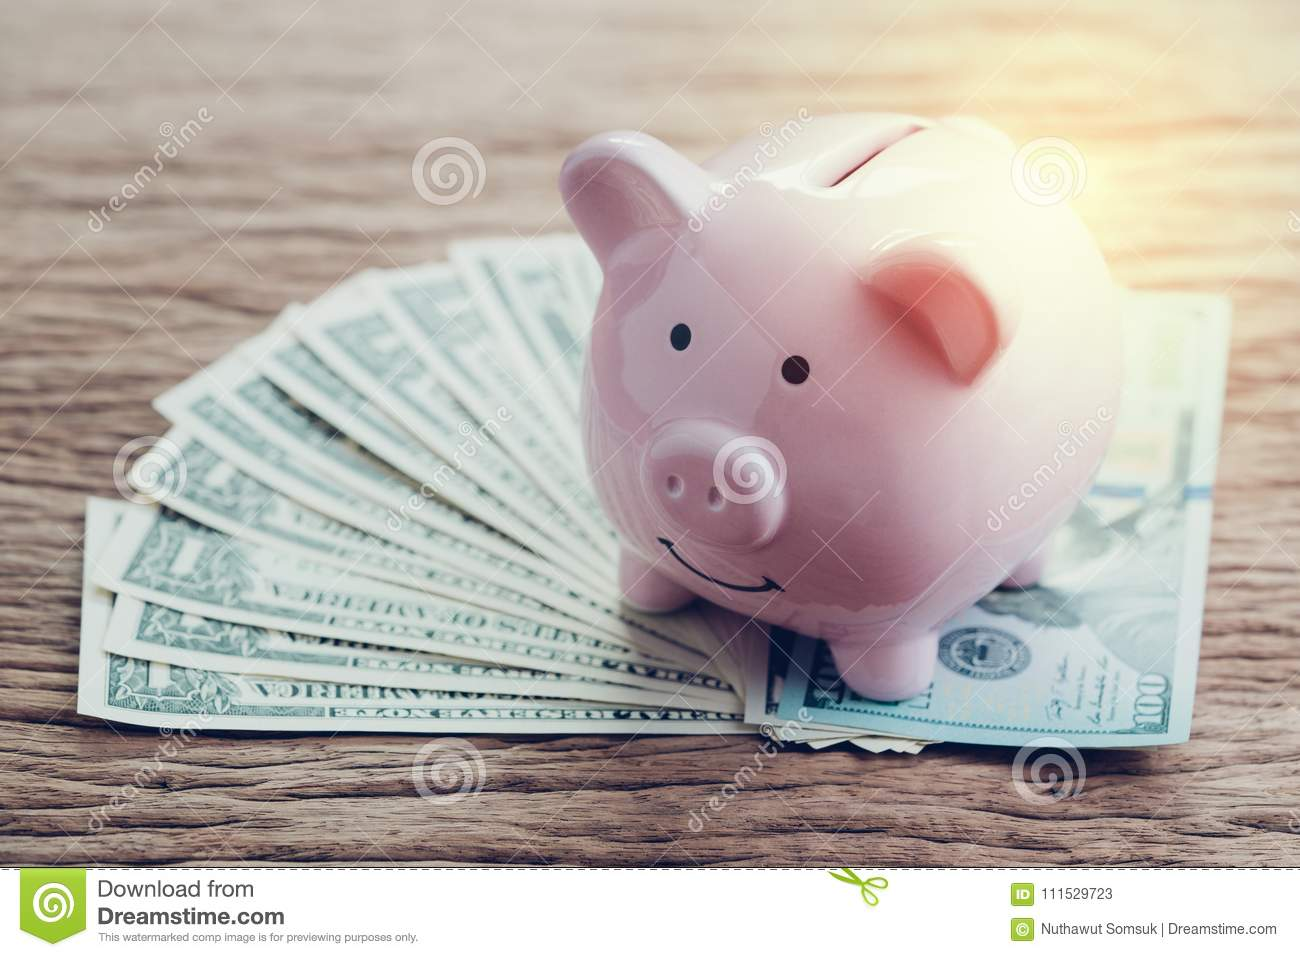 Finance, banking, saving money account, pink piggy bank on pile